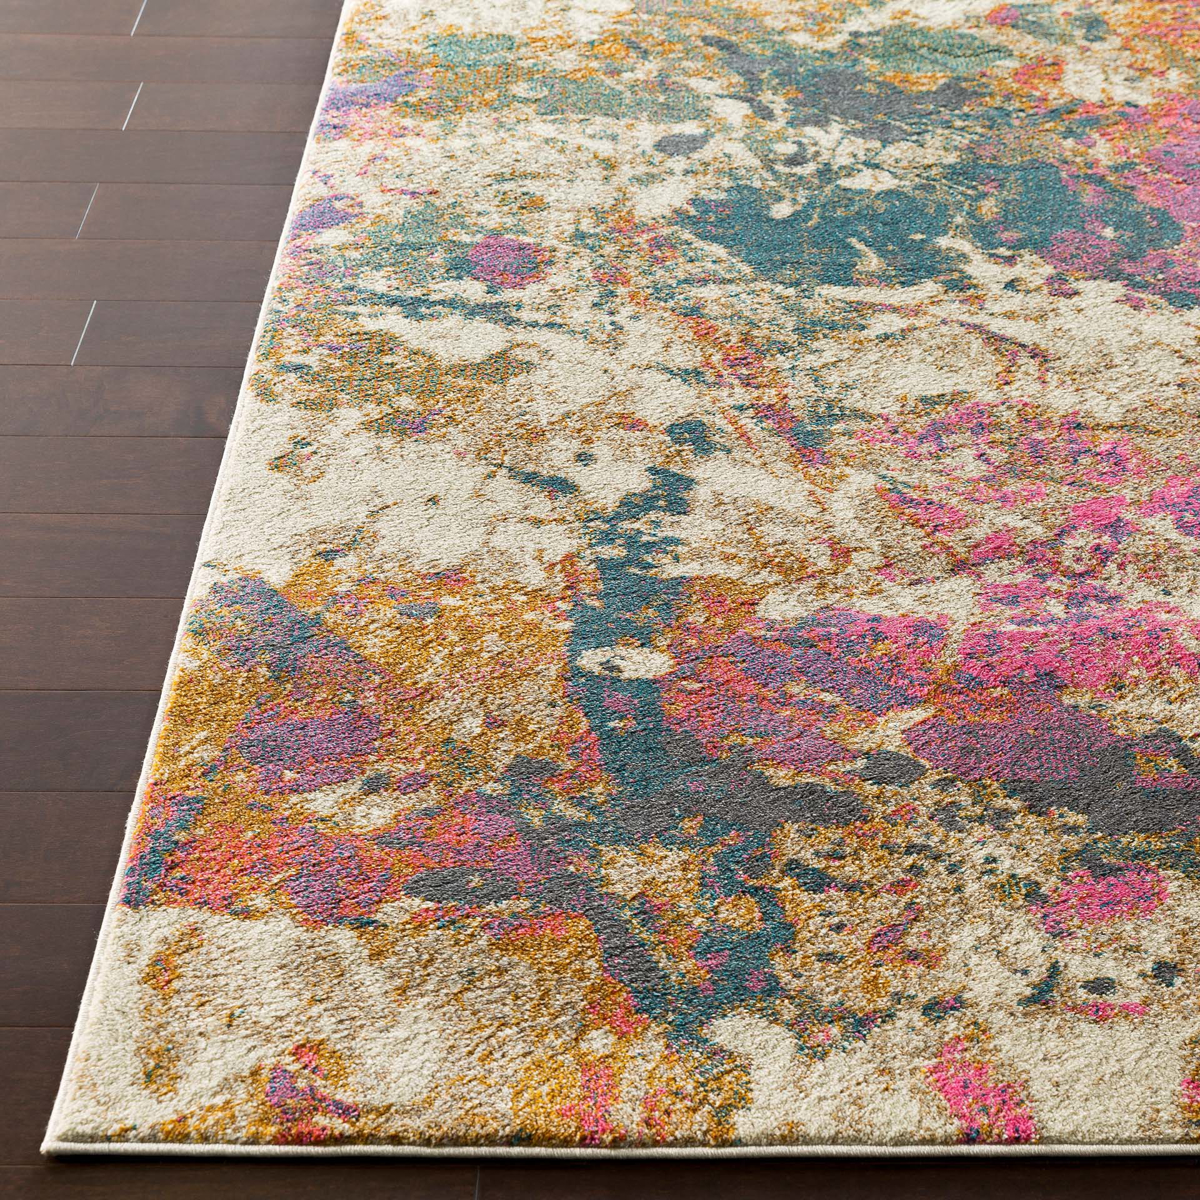 Abstract Turkish cream rug with splashes of pink, teal and orange on wood floor